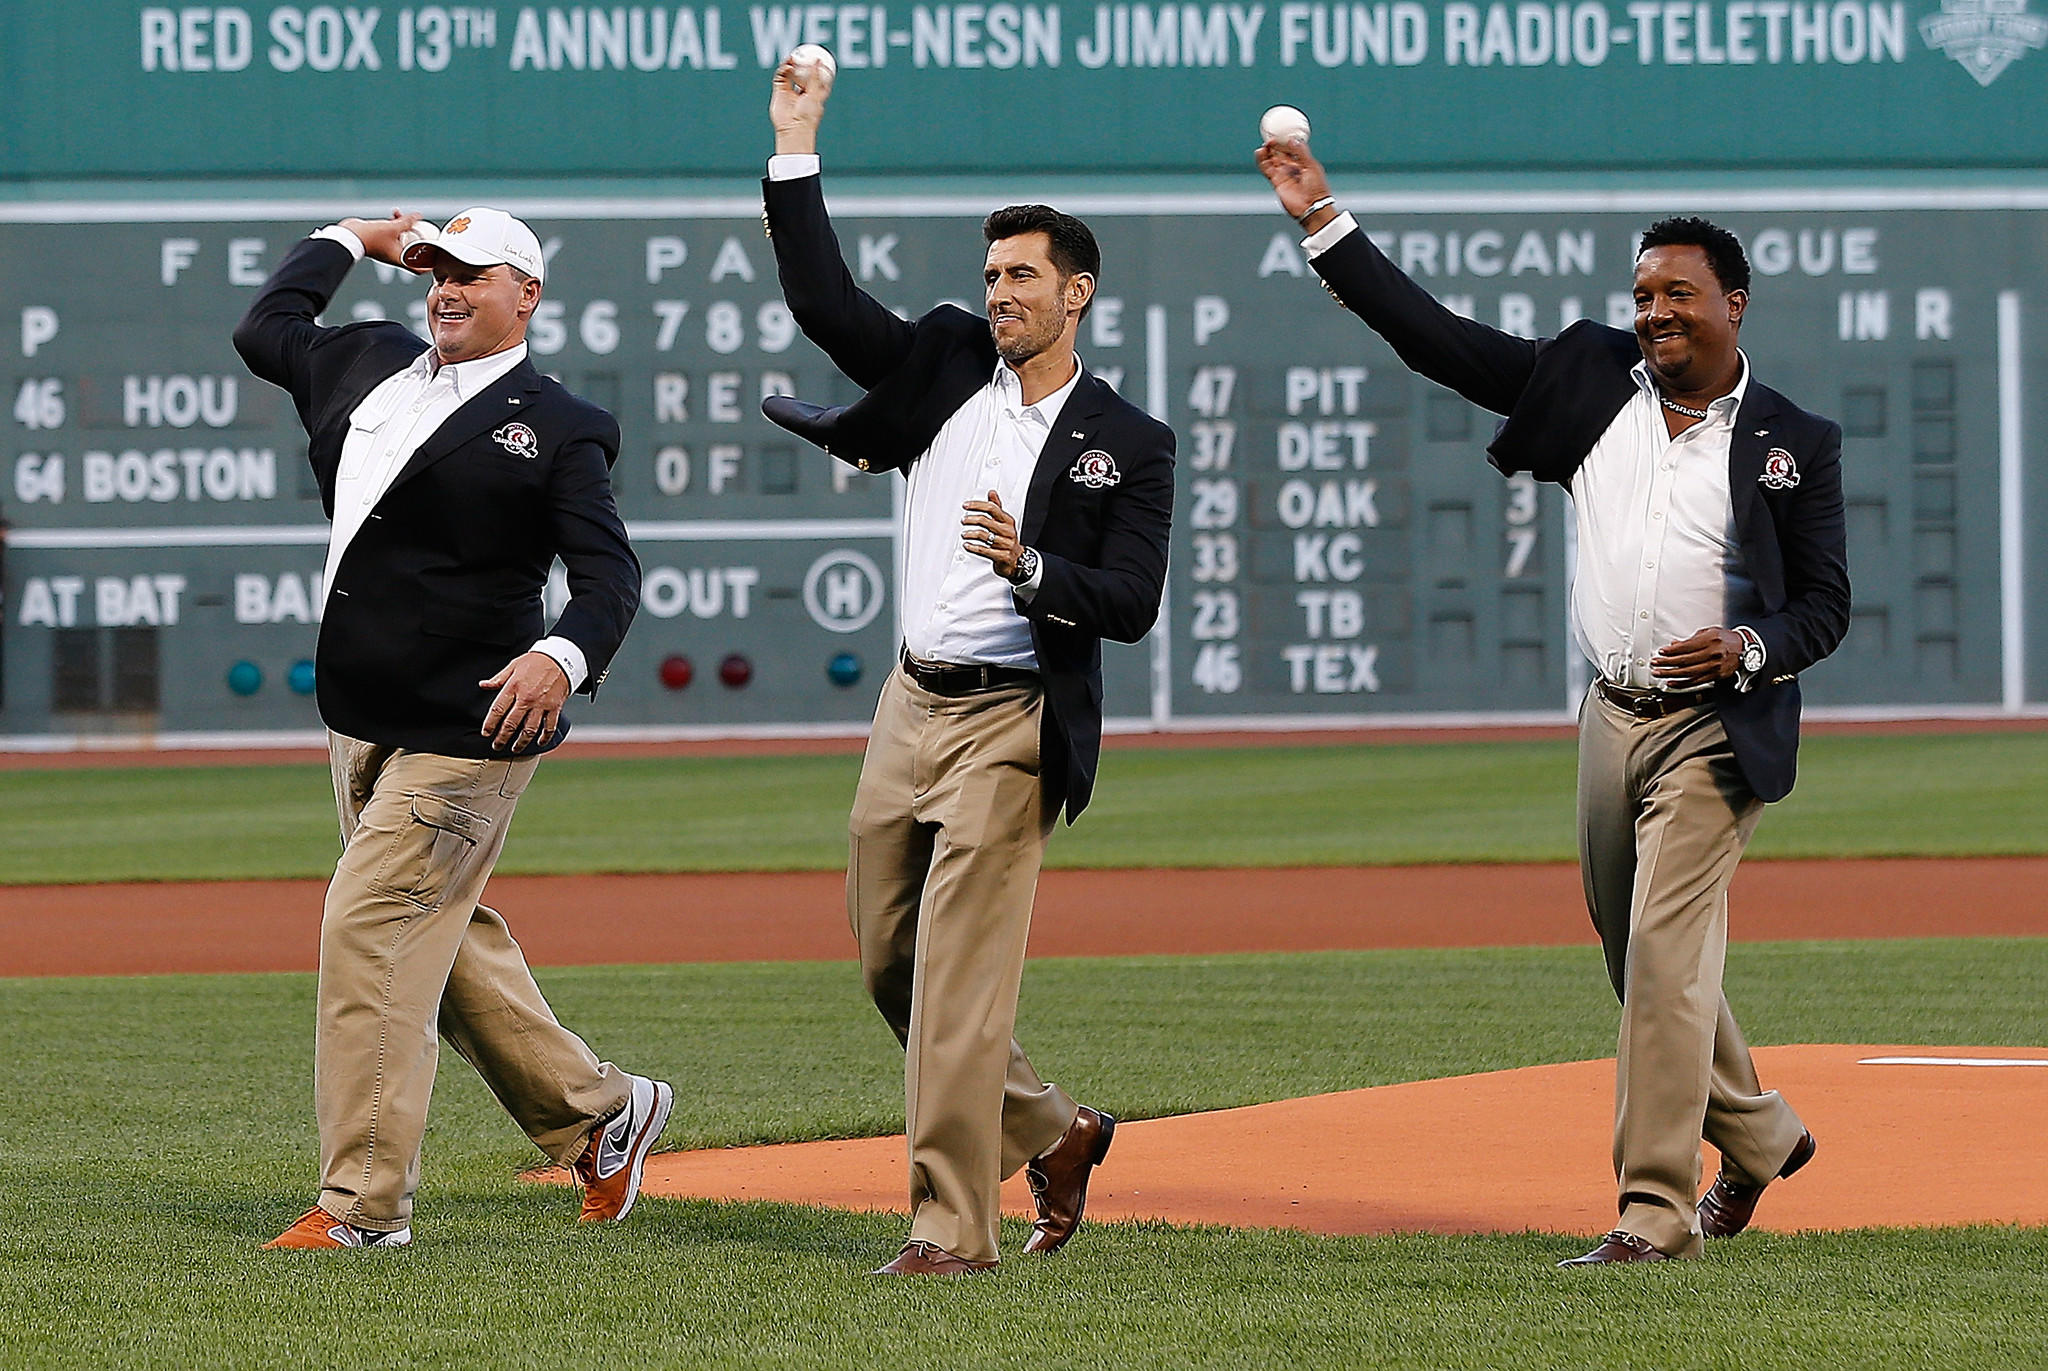 From left, Roger Clemens, Nomar Garciaparra and Pedro Martinez throw out ceremonial pitches after being inducted into the Boston Red Sox Hall of Fame before a game between the Red Sox and the Houston Astros at Fenway Park on Thursday night.